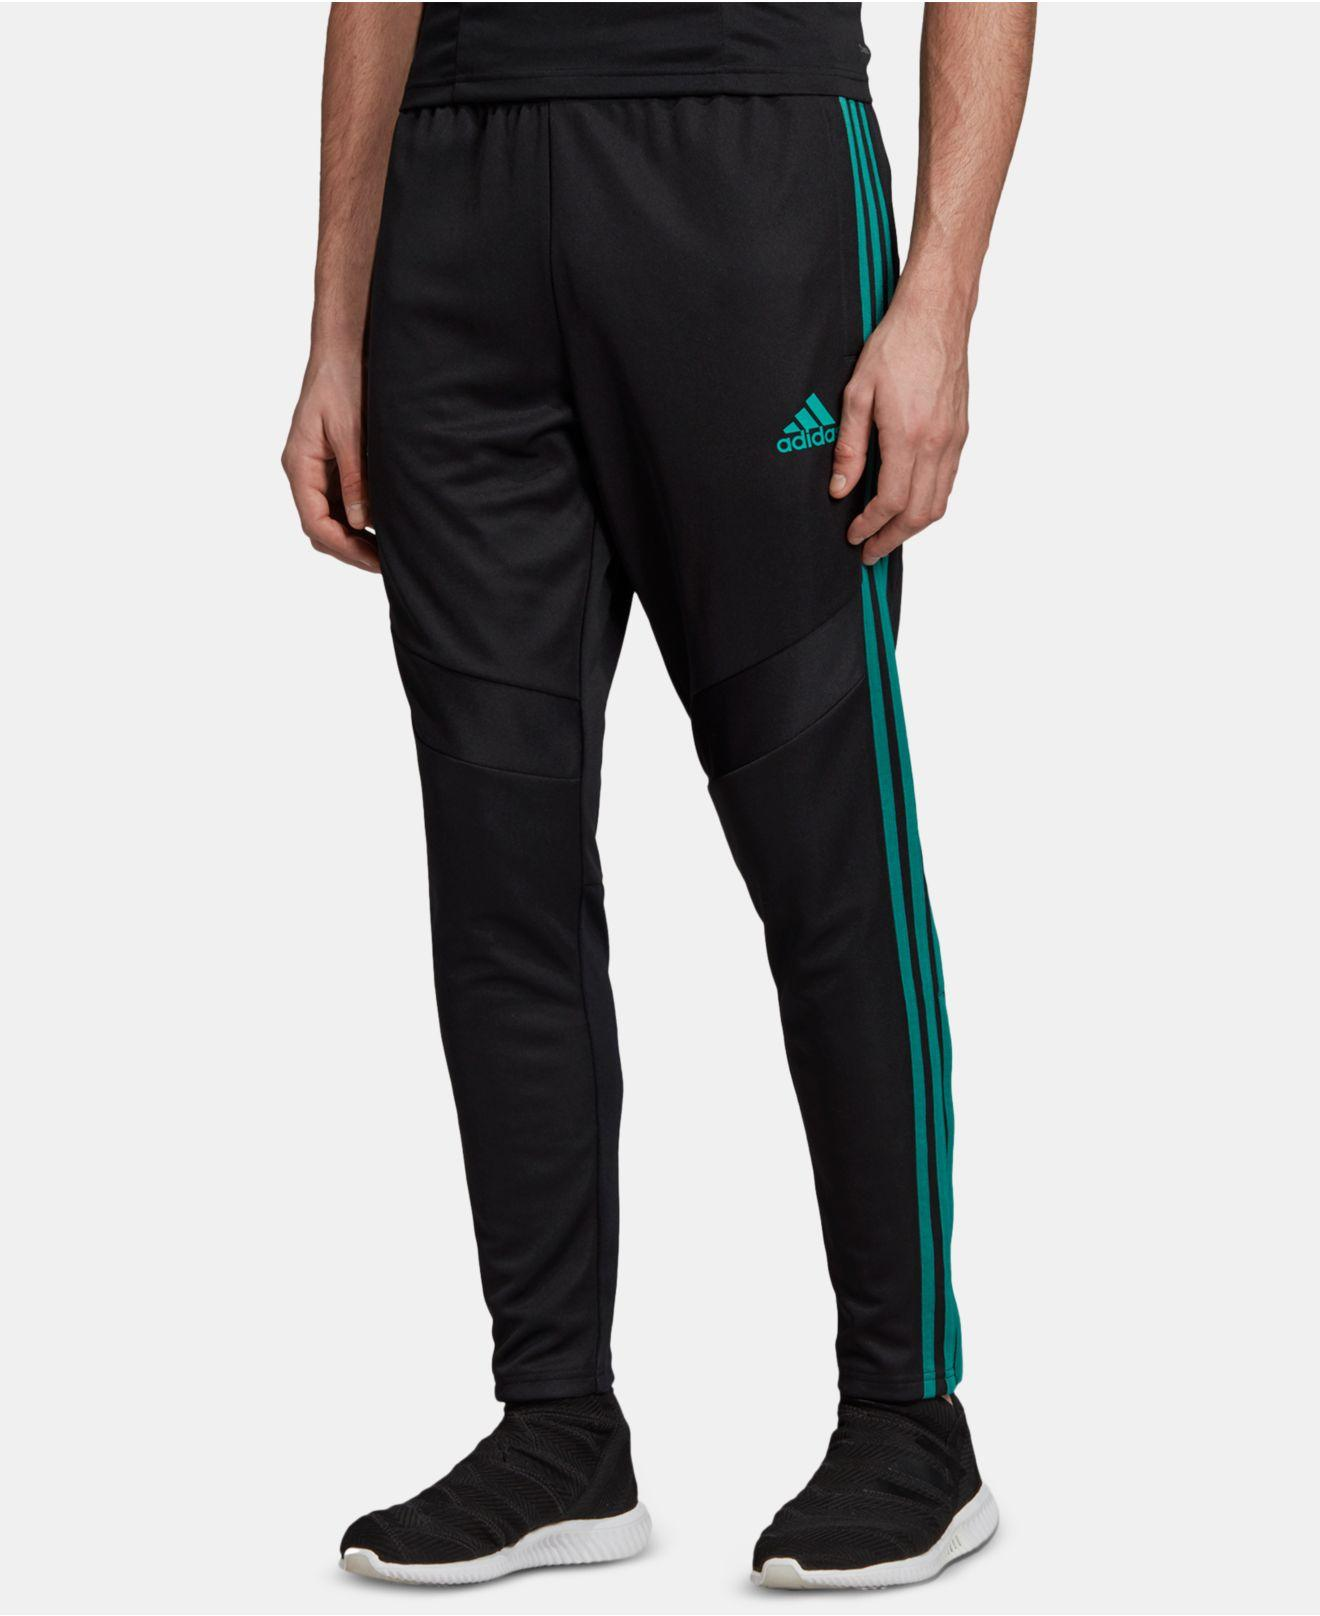 4f4324137 adidas Tiro 19 Climacool® Soccer Pants in Black for Men - Lyst